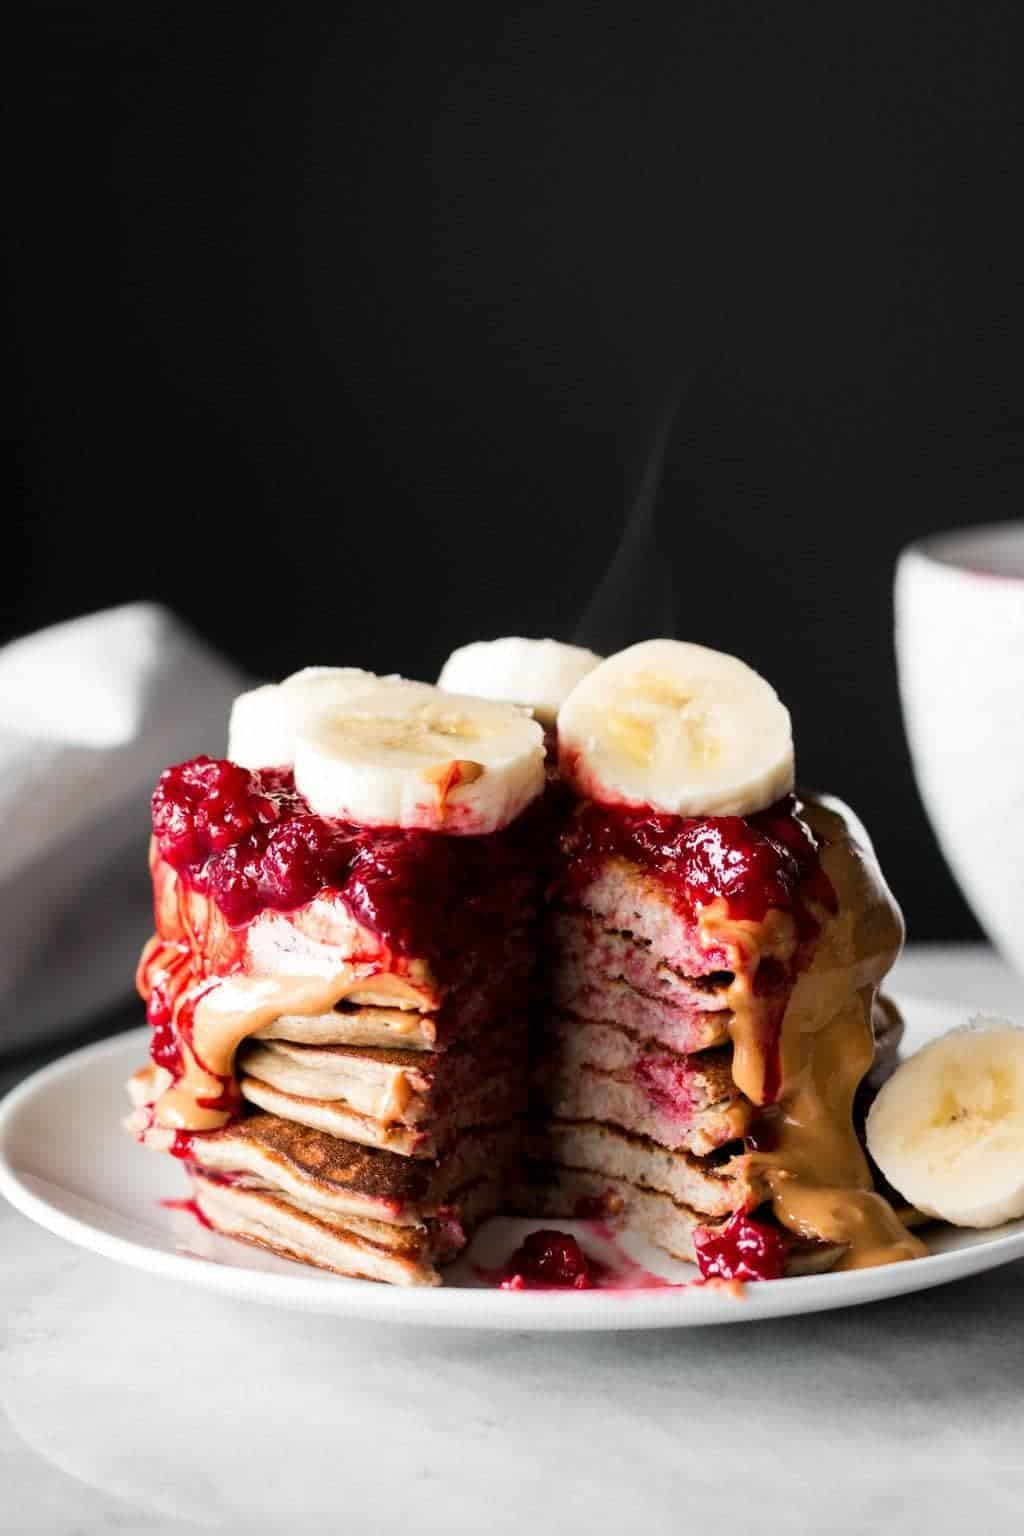 Whole Wheat Banana Pancakes with berries